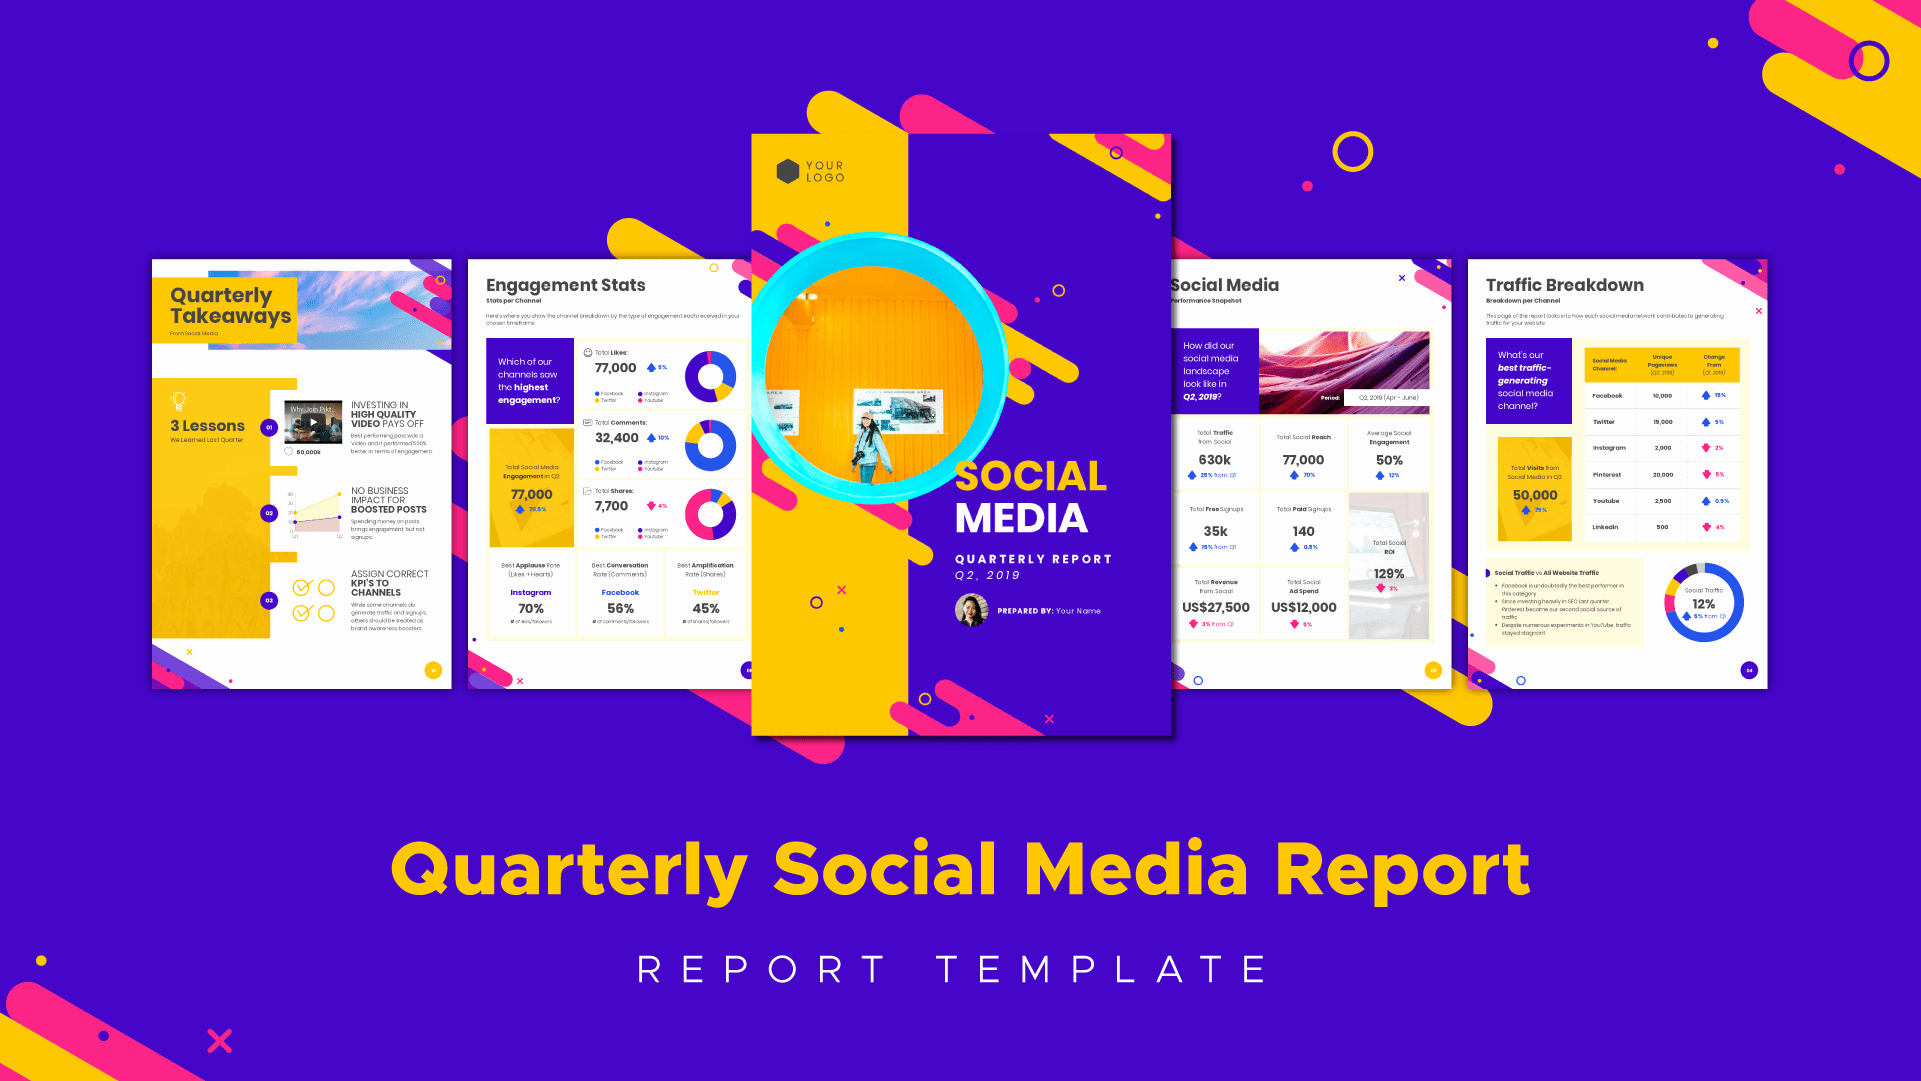 Social Media Report Template Download Awesome social Media Marketing How to Create Impactful Reports